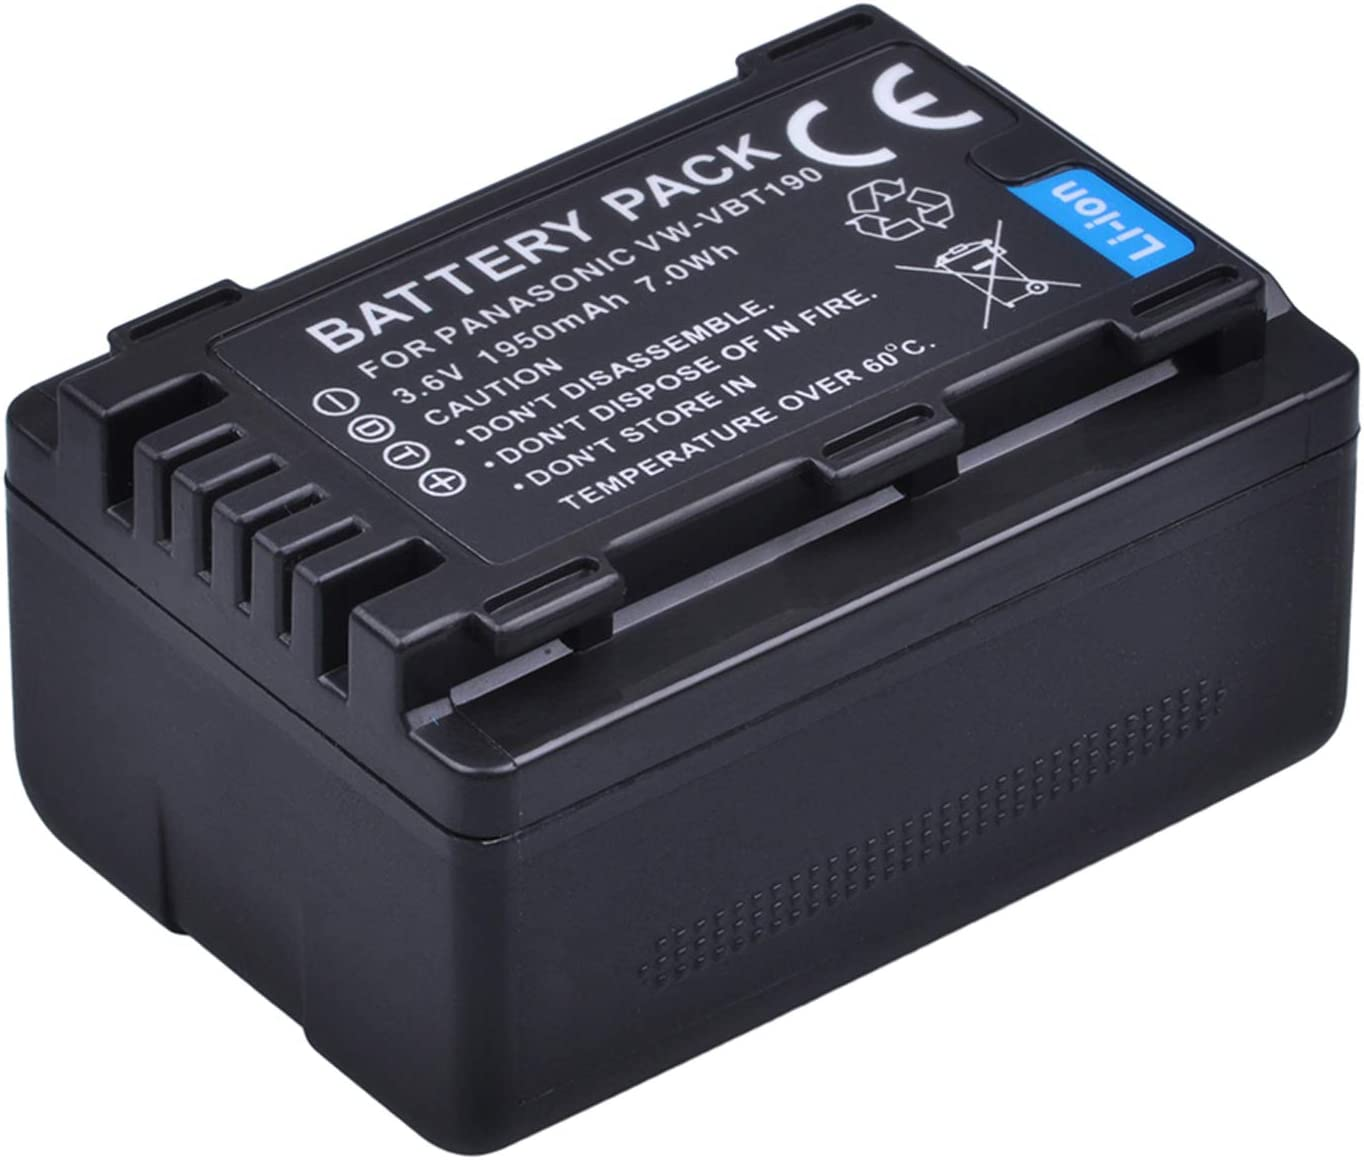 HC-W858 Full HD Camcorder Battery 2 Pack and Dual Battery USB Charger for Panasonic HC-W570 HC-W585 HC-W580 HC-W850